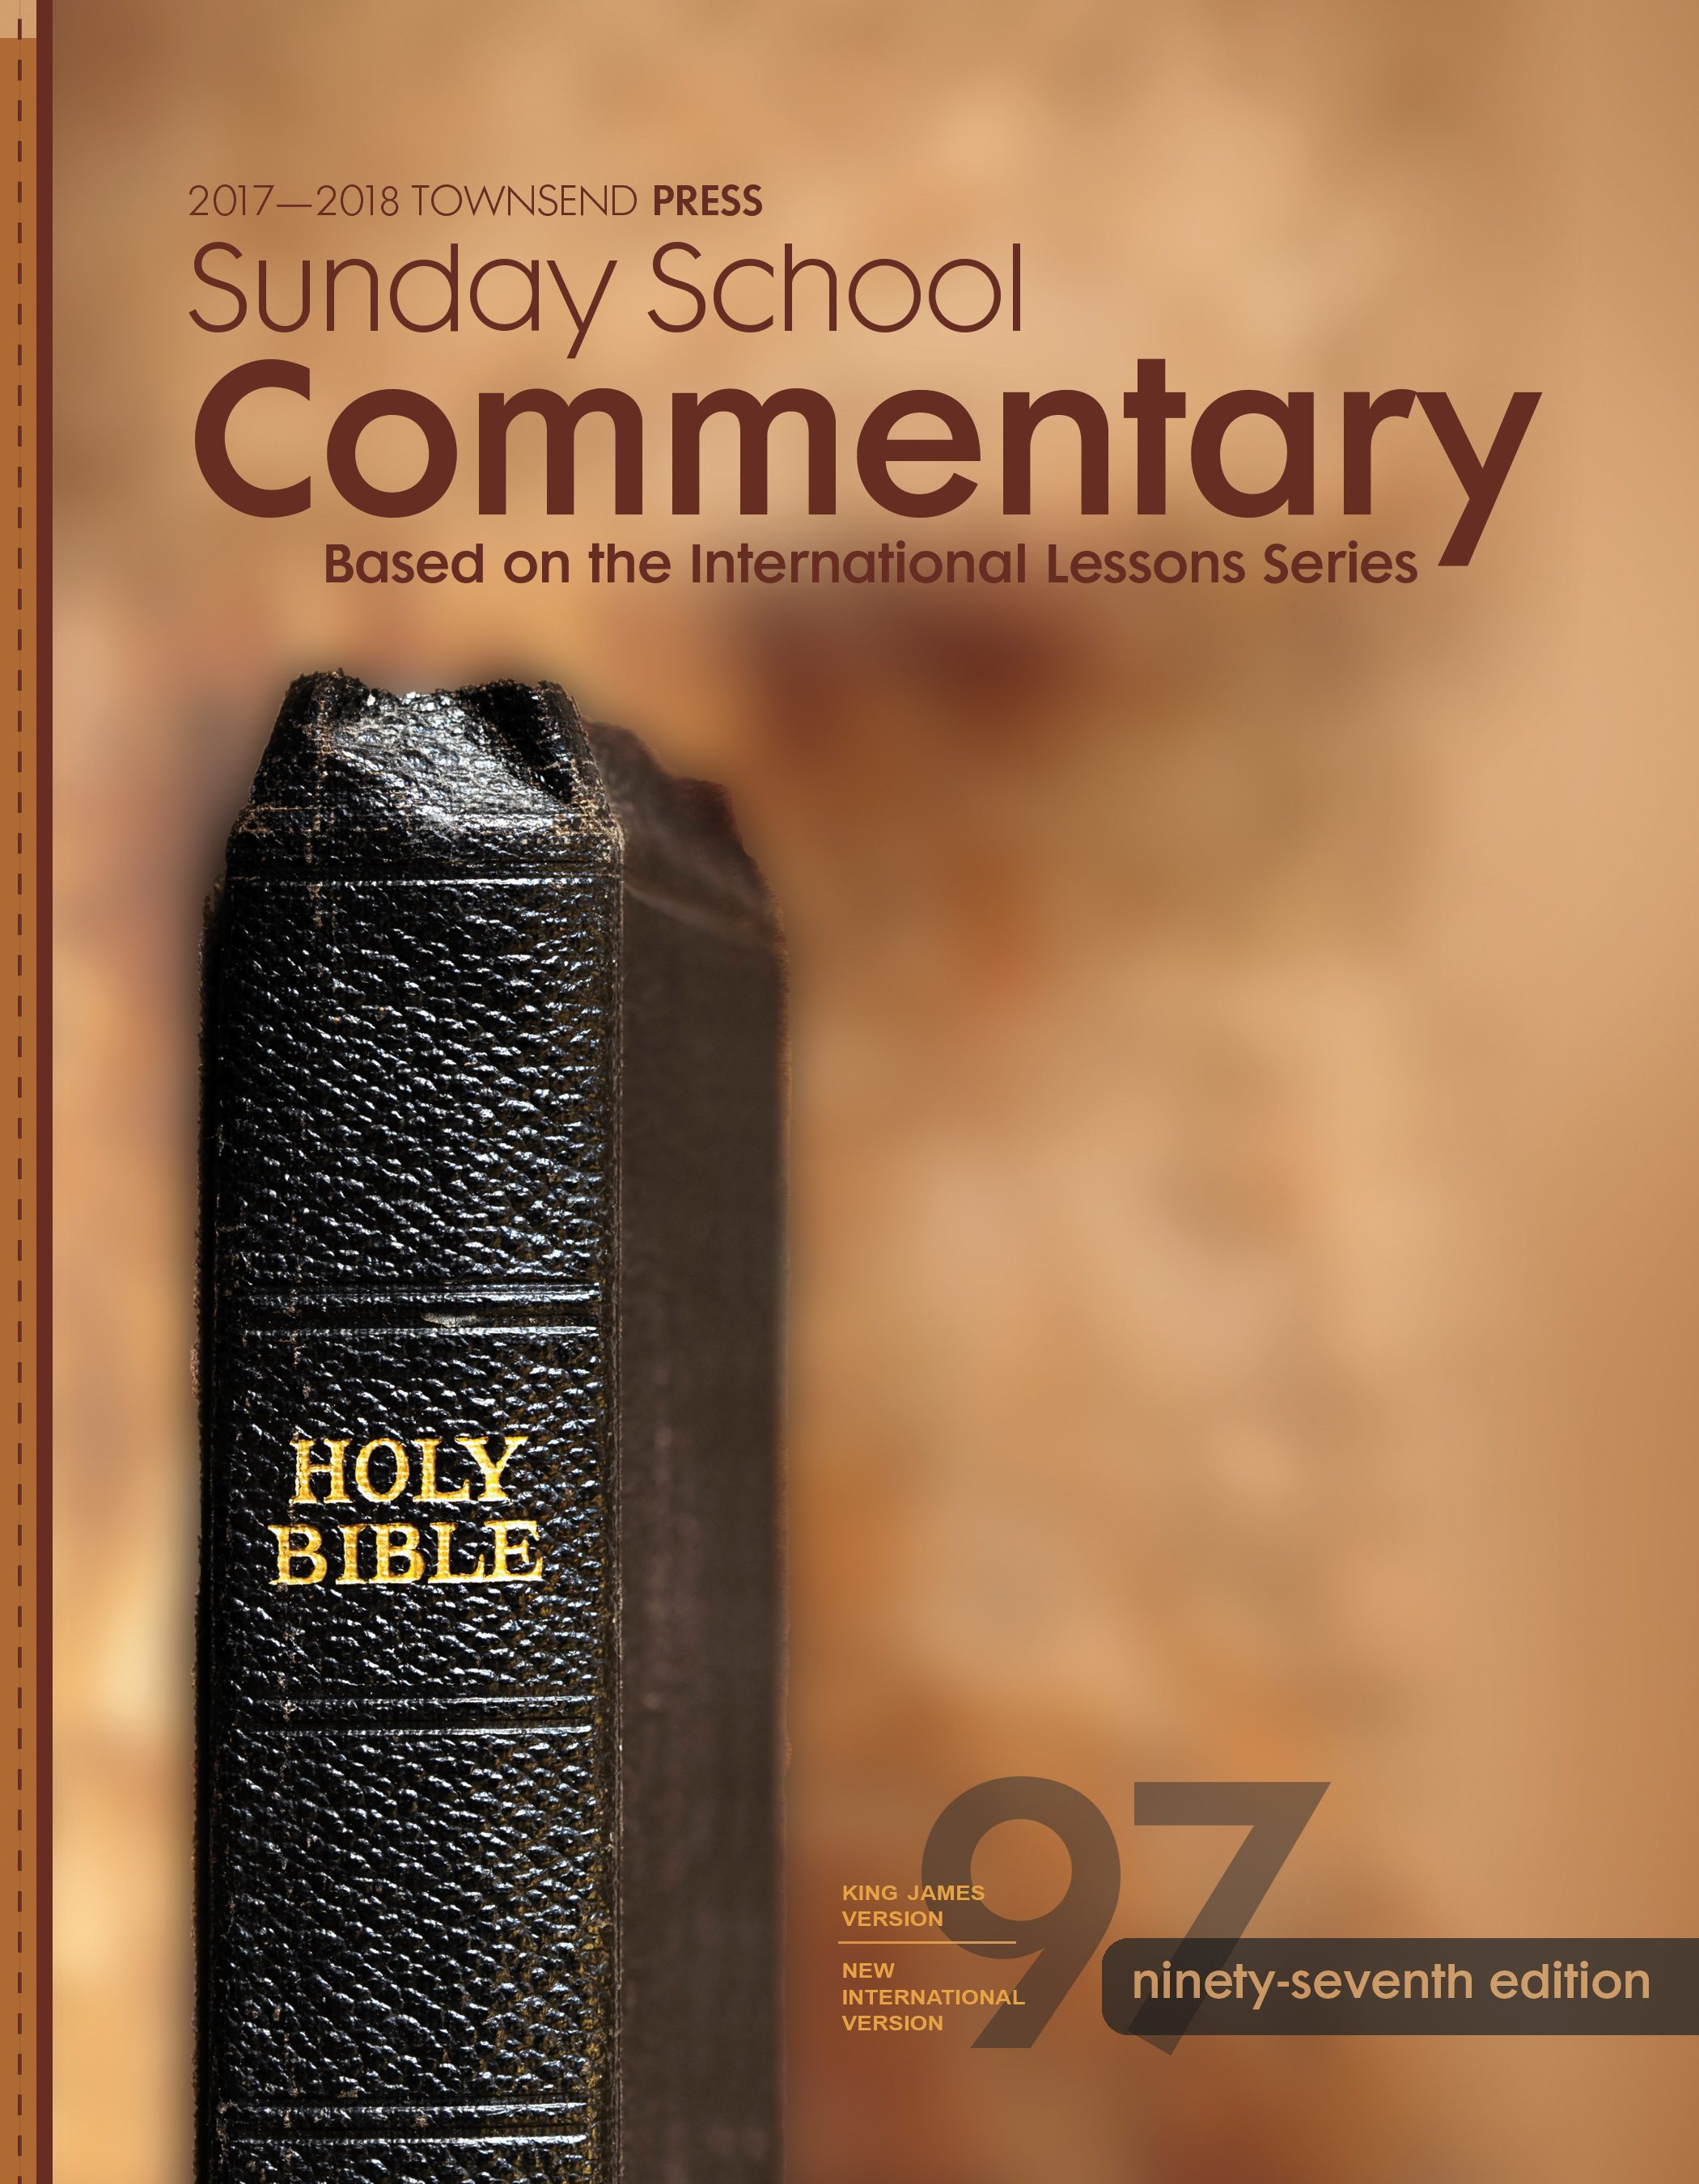 2017-2018 Townsend Press Sunday School Commentary 97th Edition